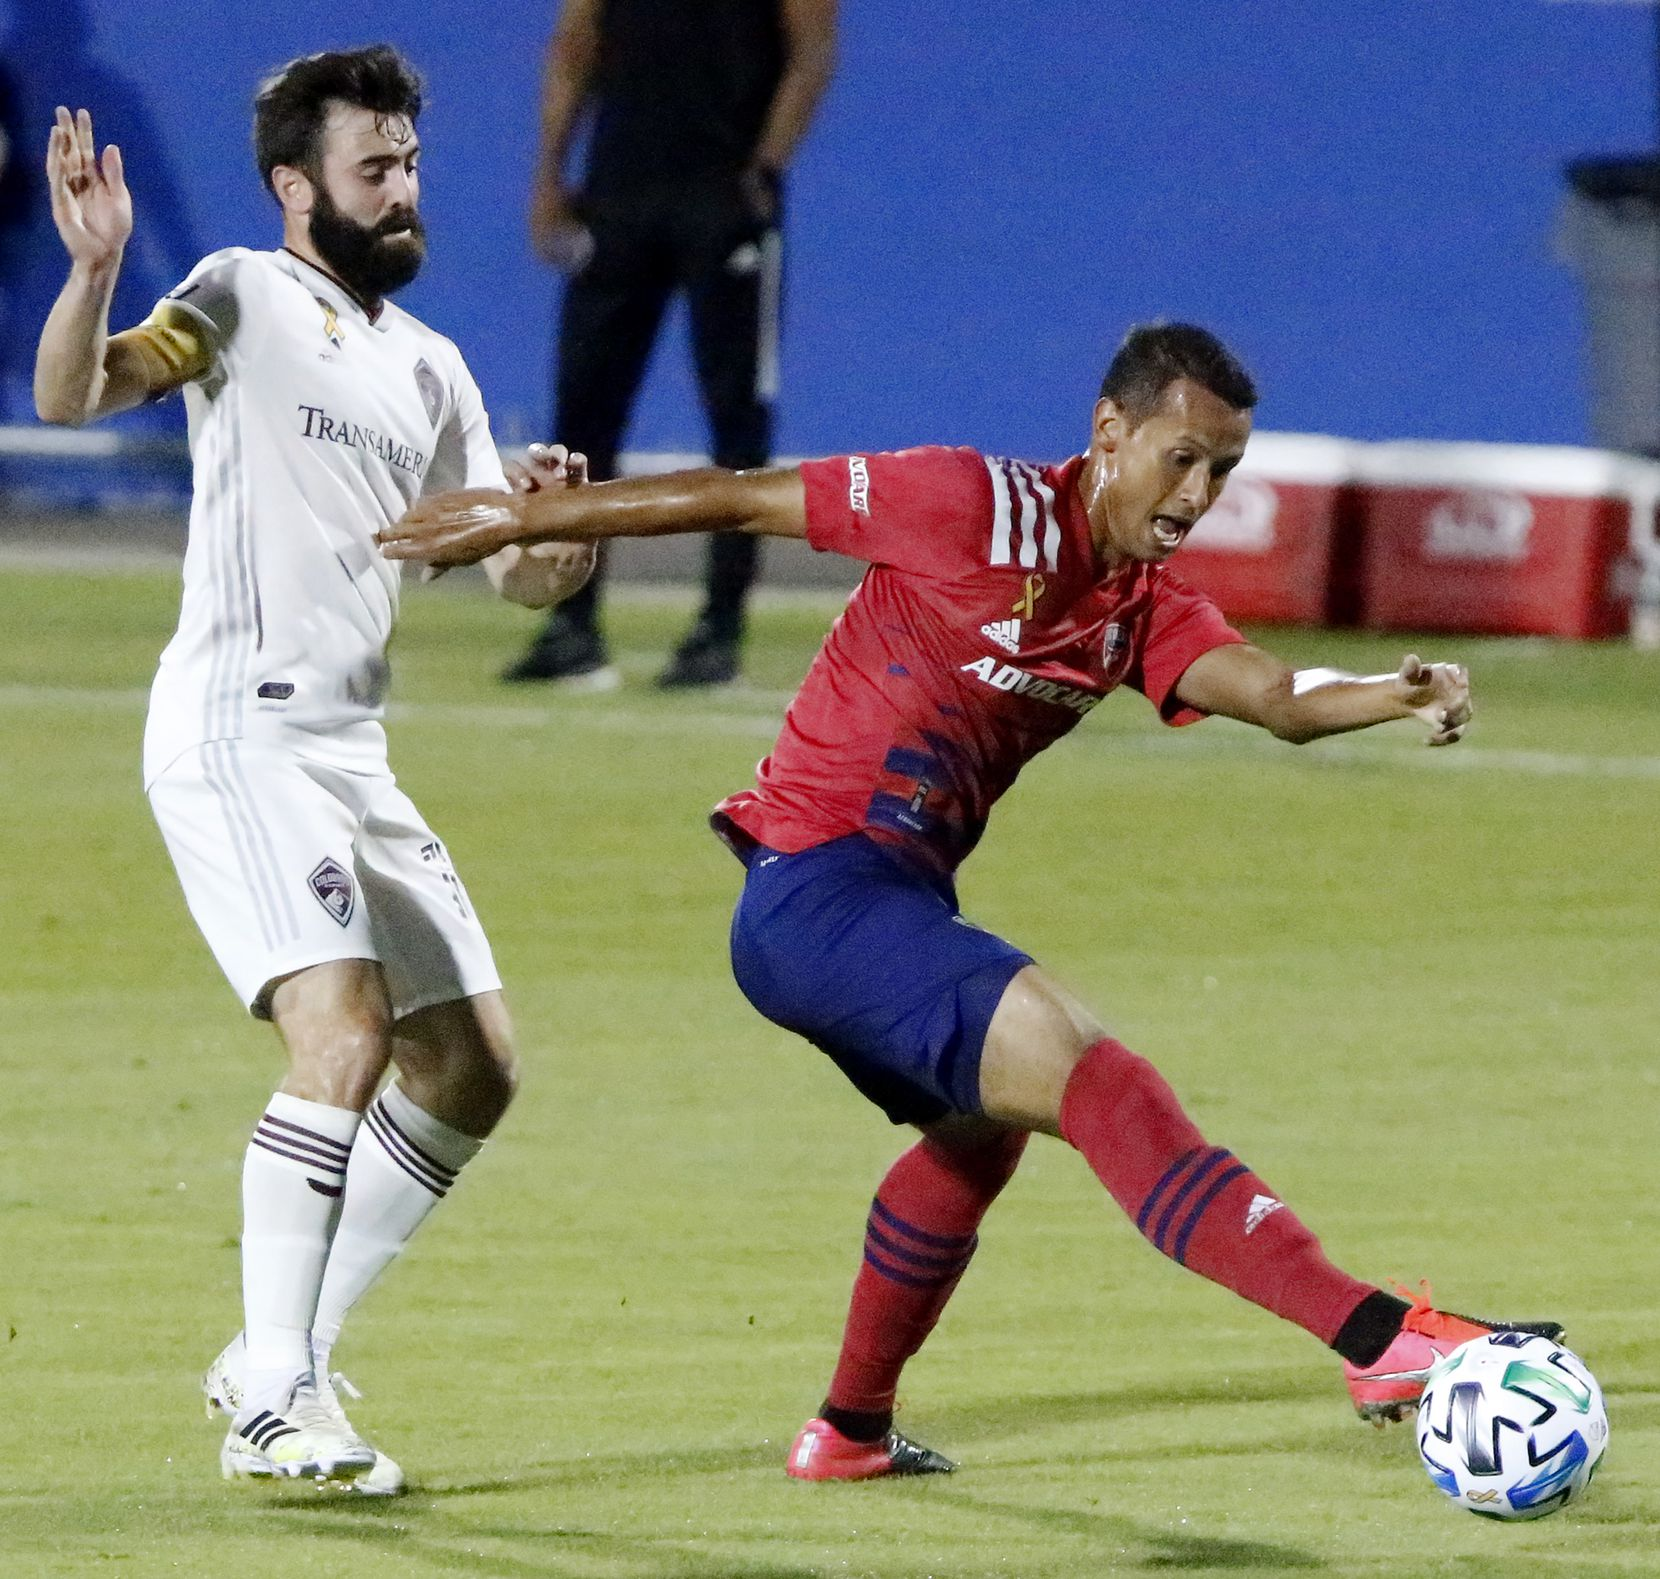 FC Dallas midfielder Pablo Aranguiz shields the soccer ball from Colorado Rapids midfielder Jack Price (19) during the first half as FC Dallas hosted the Colorado Rapids at Toyota Stadium in Frisco on Wednesday night, September 16, 2020. (Stewart F. House/Special Contributor)